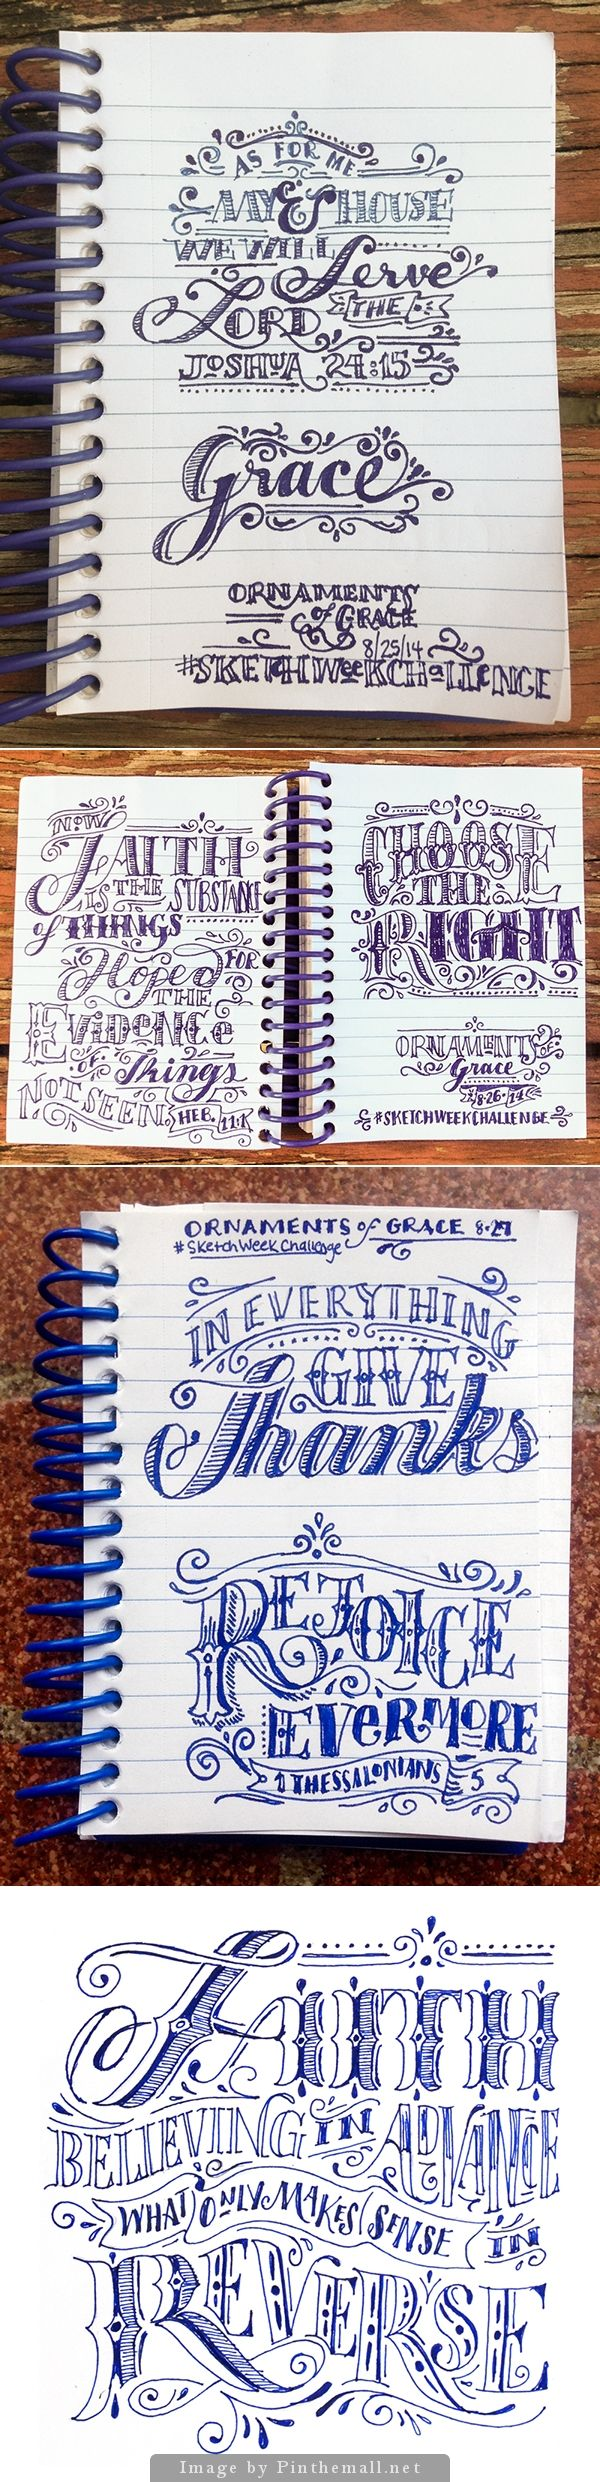 Lettering sketches by Beth Rufener @meganpin7